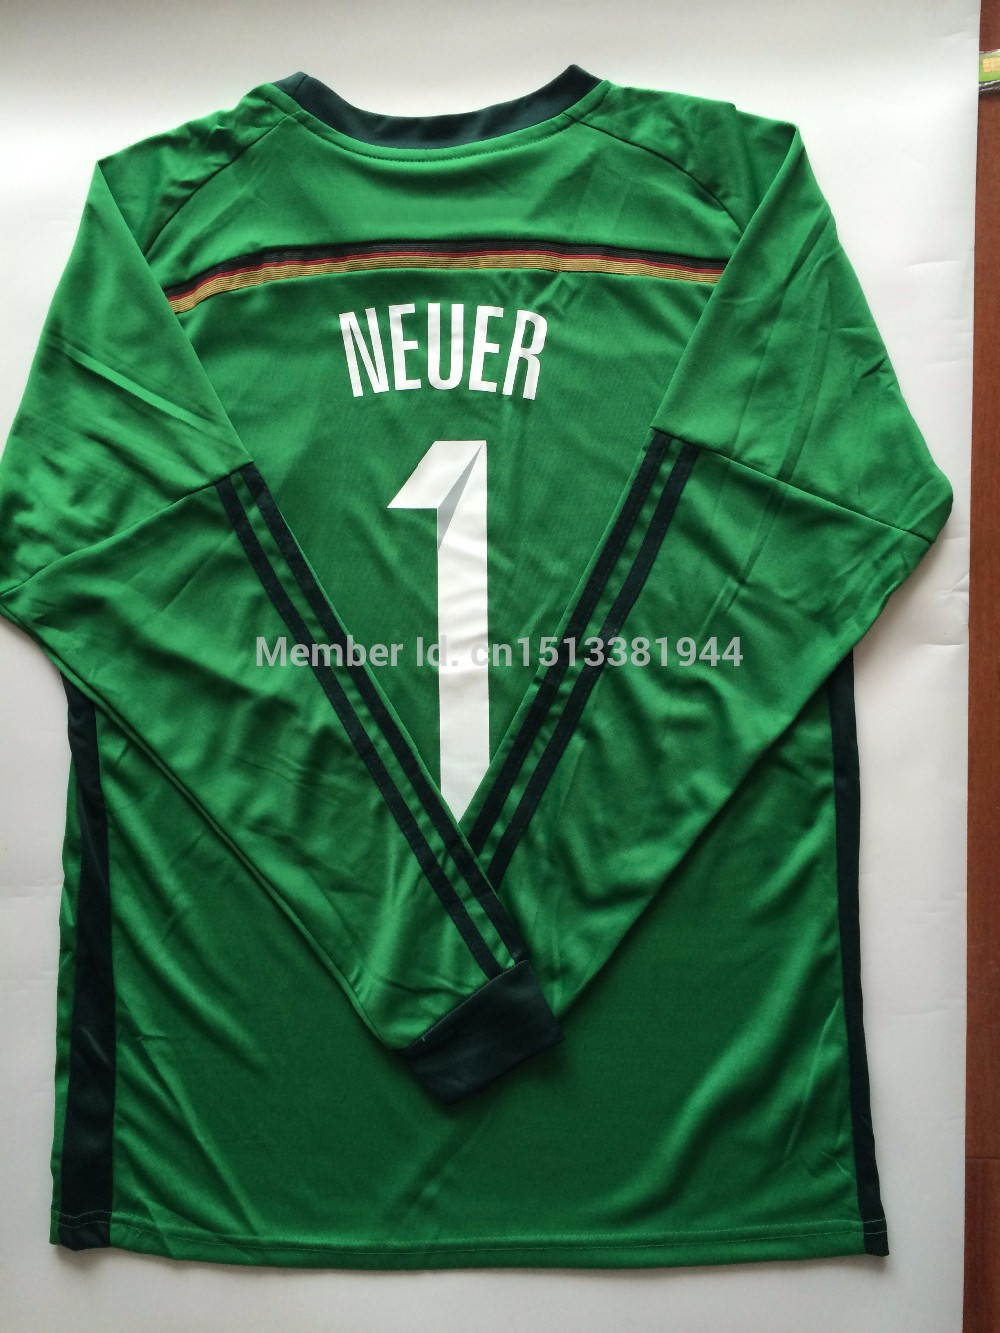 7d2d5668118 Germany neuer jersey-- high quality Germany soccer jersey 2014 with 4 stars  number team germany soccer jersey for men